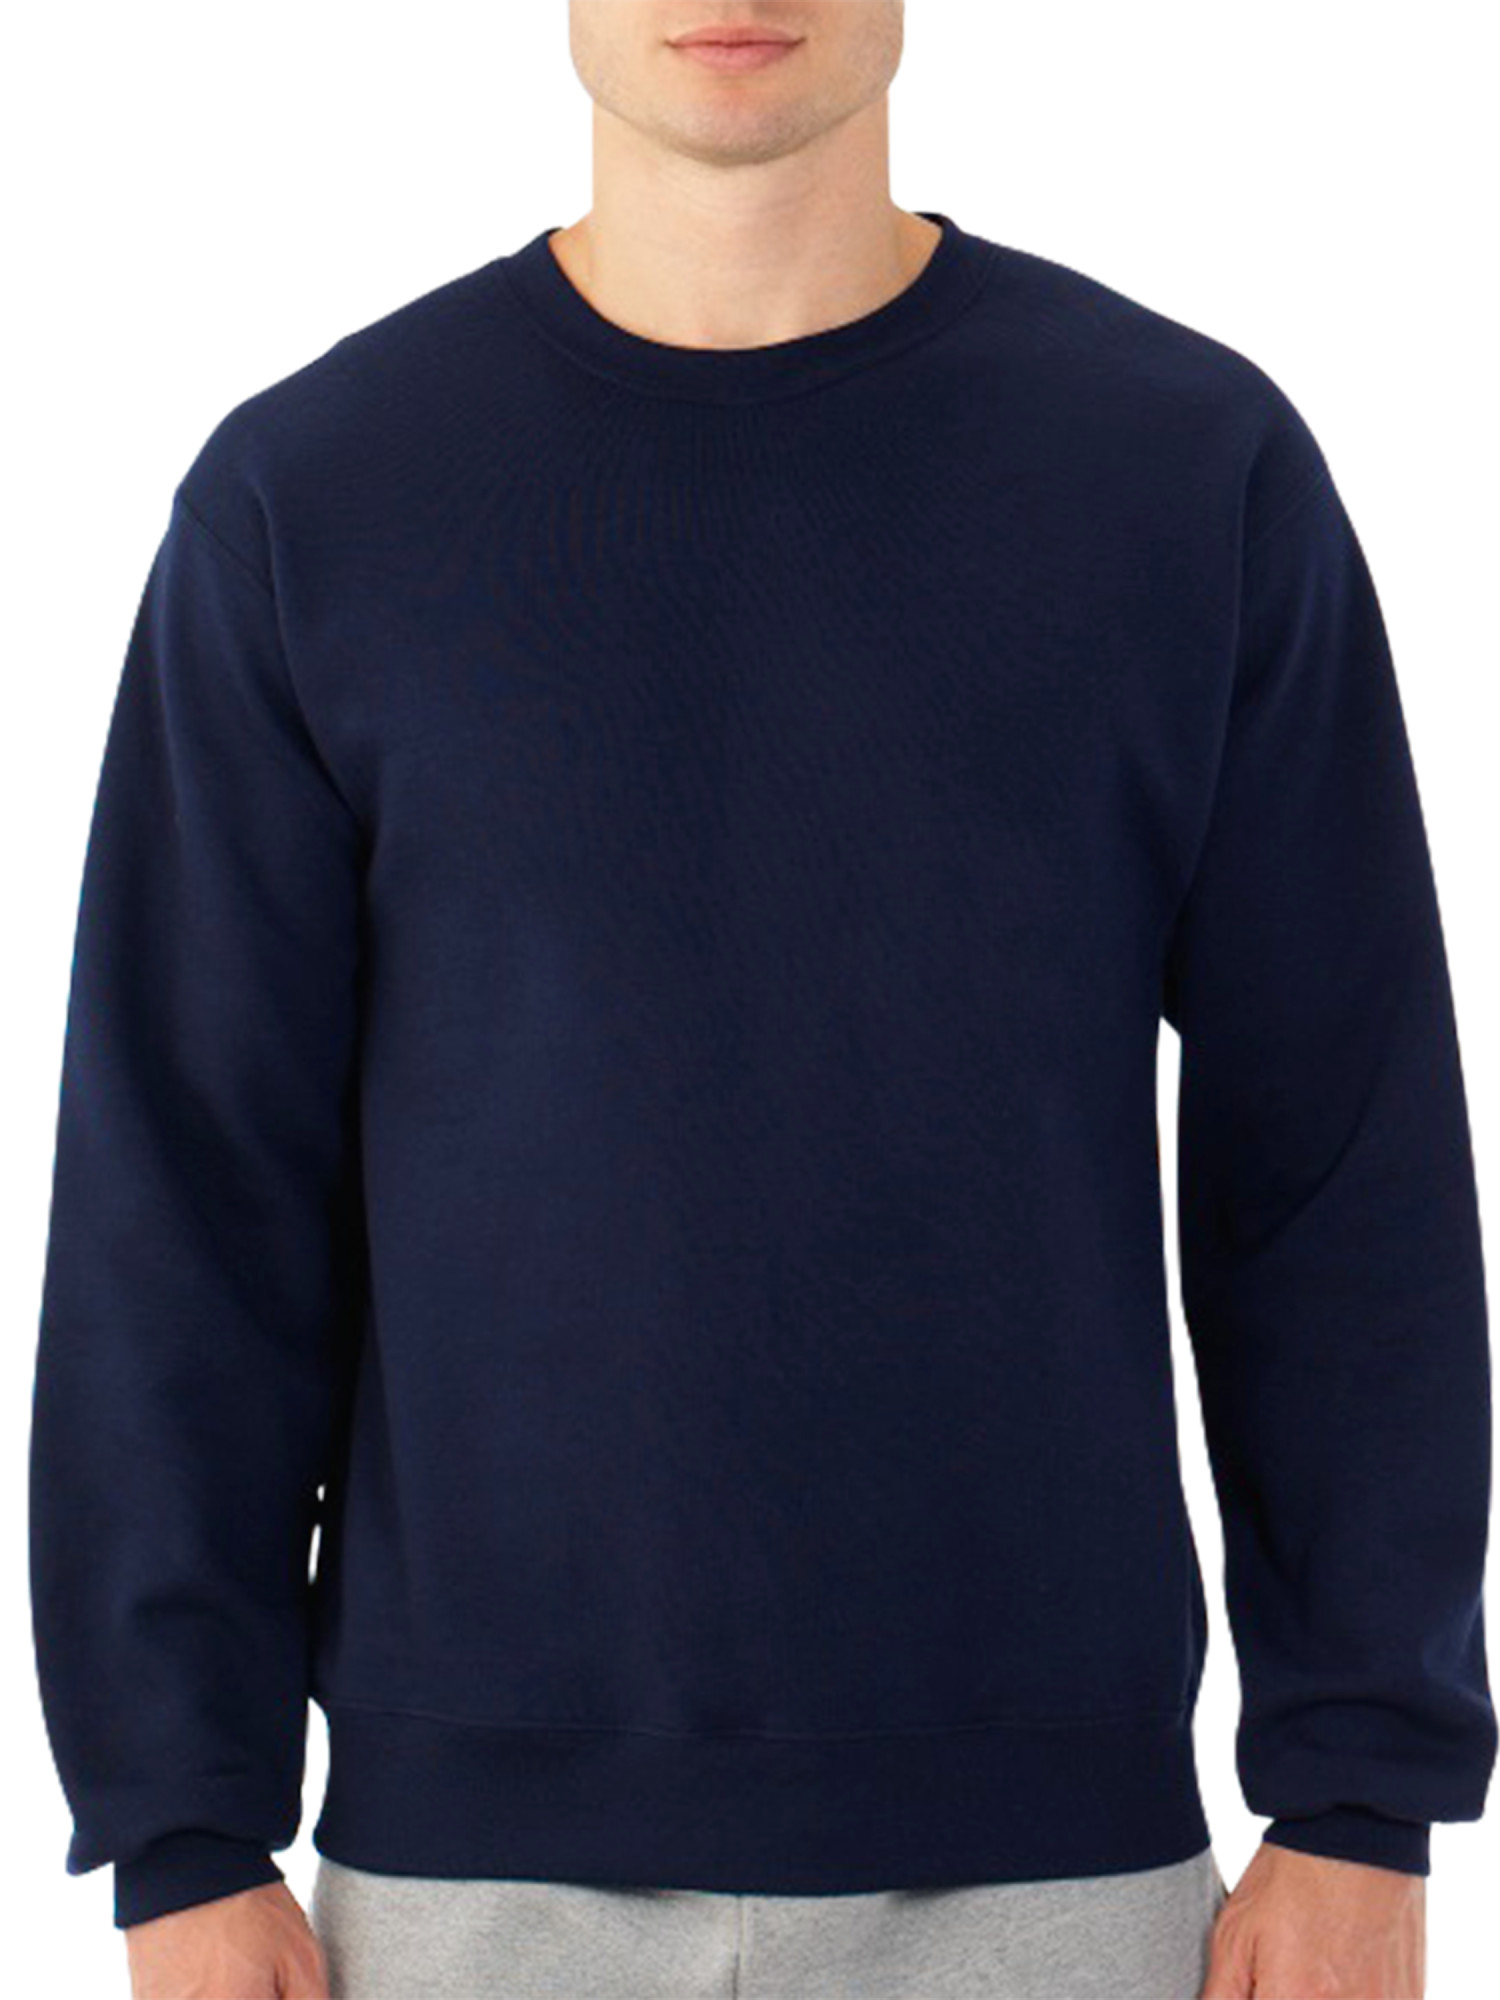 6d6a72ae97e6 Fruit of the Loom - Fruit of the Loom Men s Dual Defense EverSoft Crew  Sweatshirt - Walmart.com